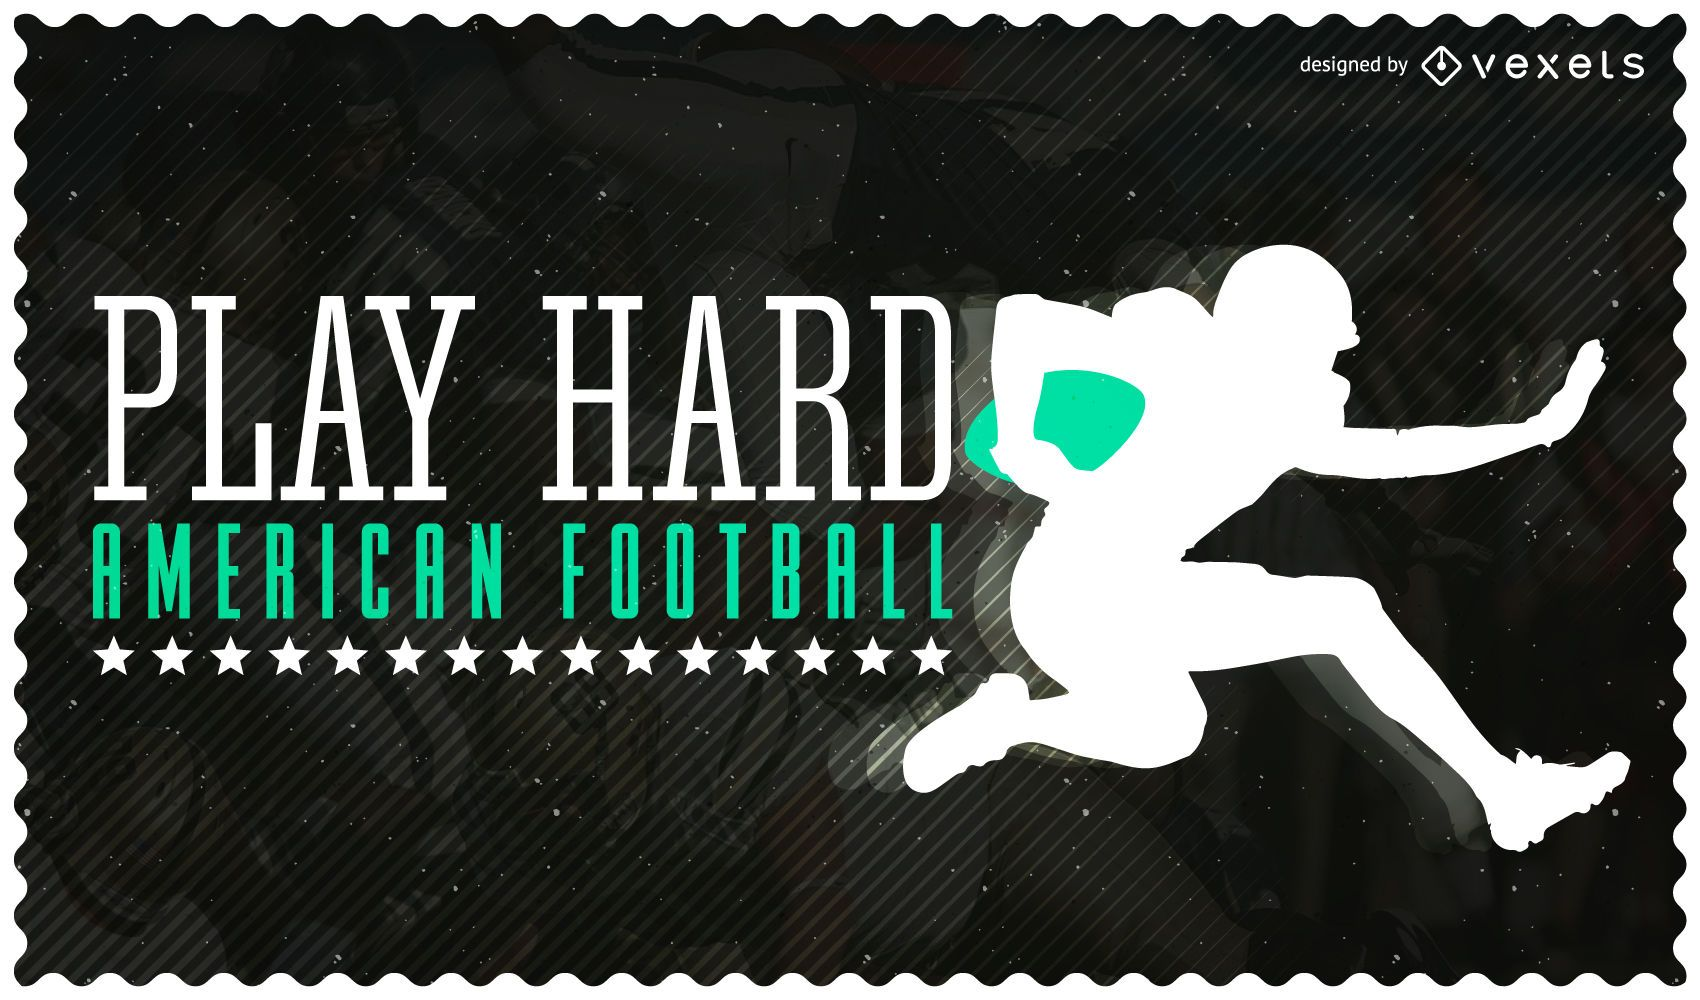 American Football background with silhouettes